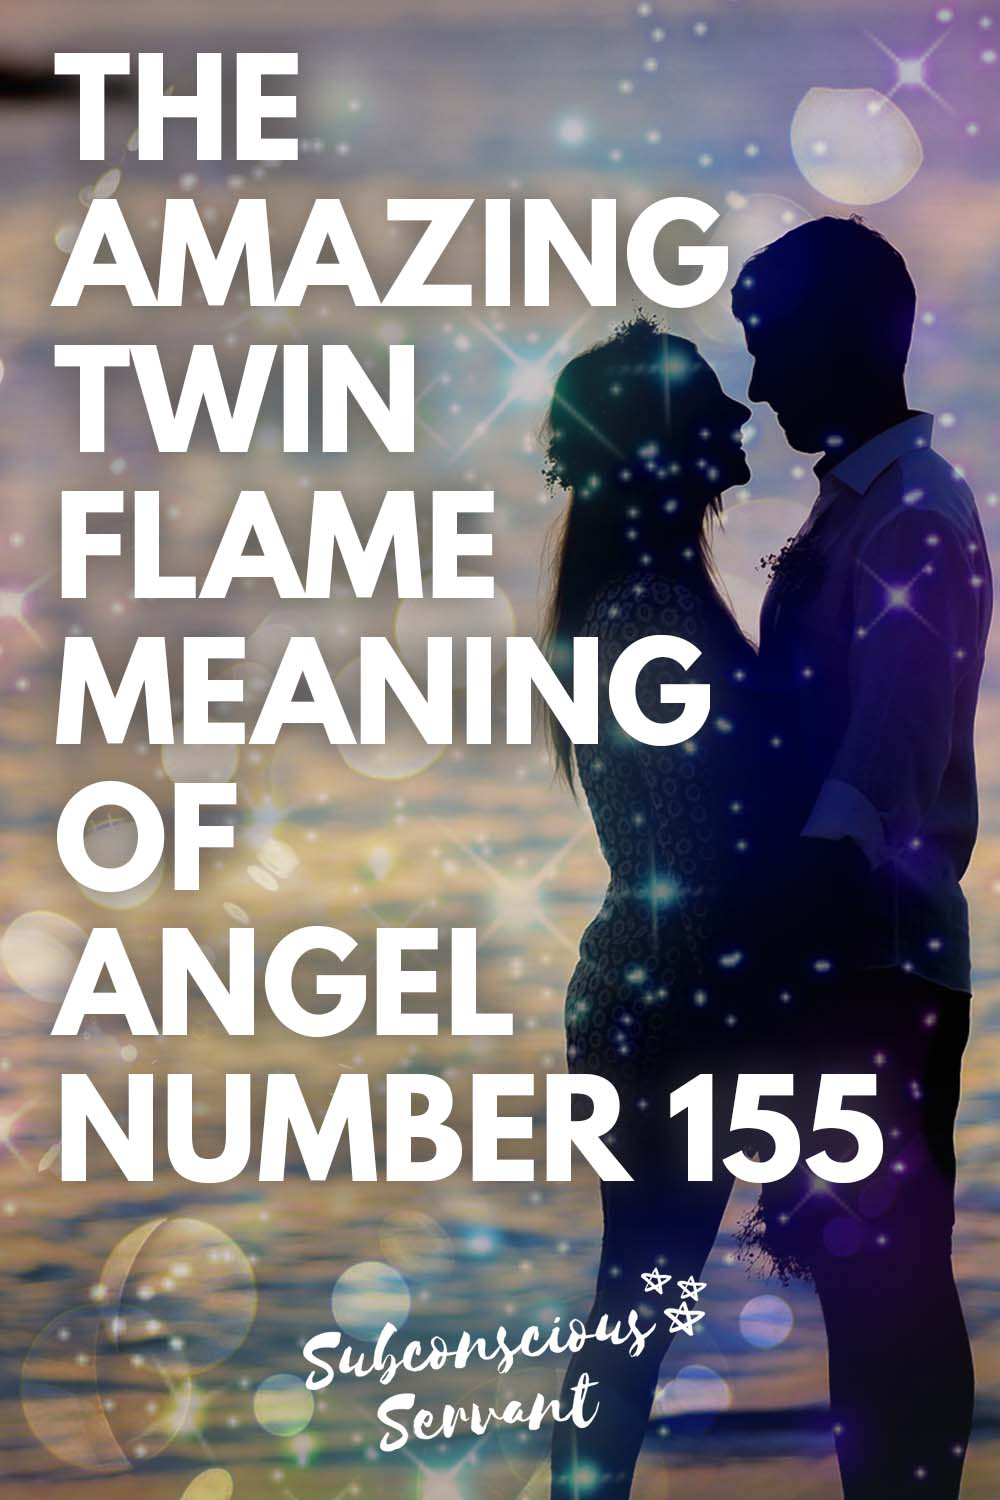 The Amazing Twin Flame Meaning of Angel Number 155